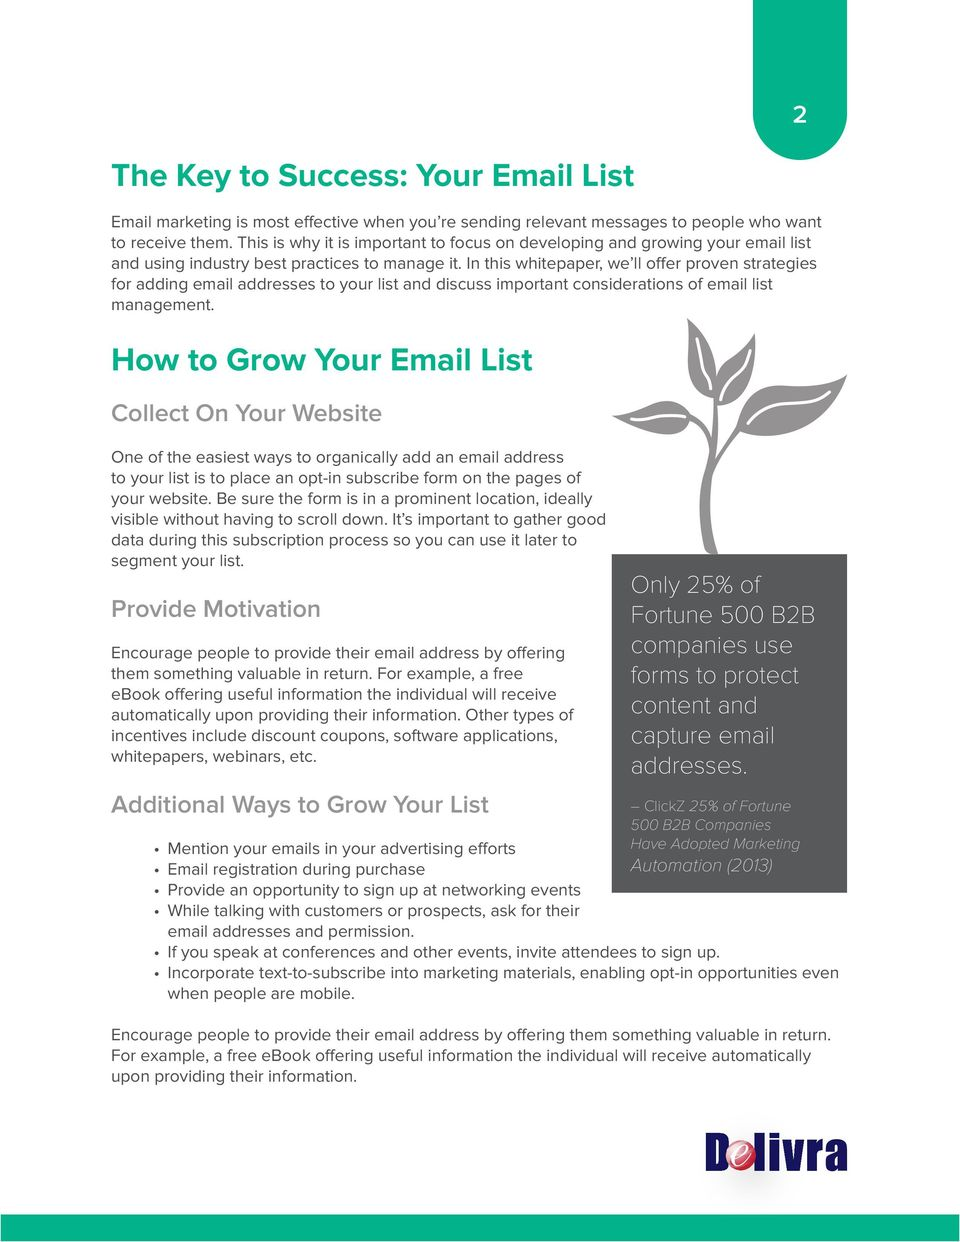 In this whitepaper, we ll offer proven strategies for adding email addresses to your list and discuss important considerations of email list management.